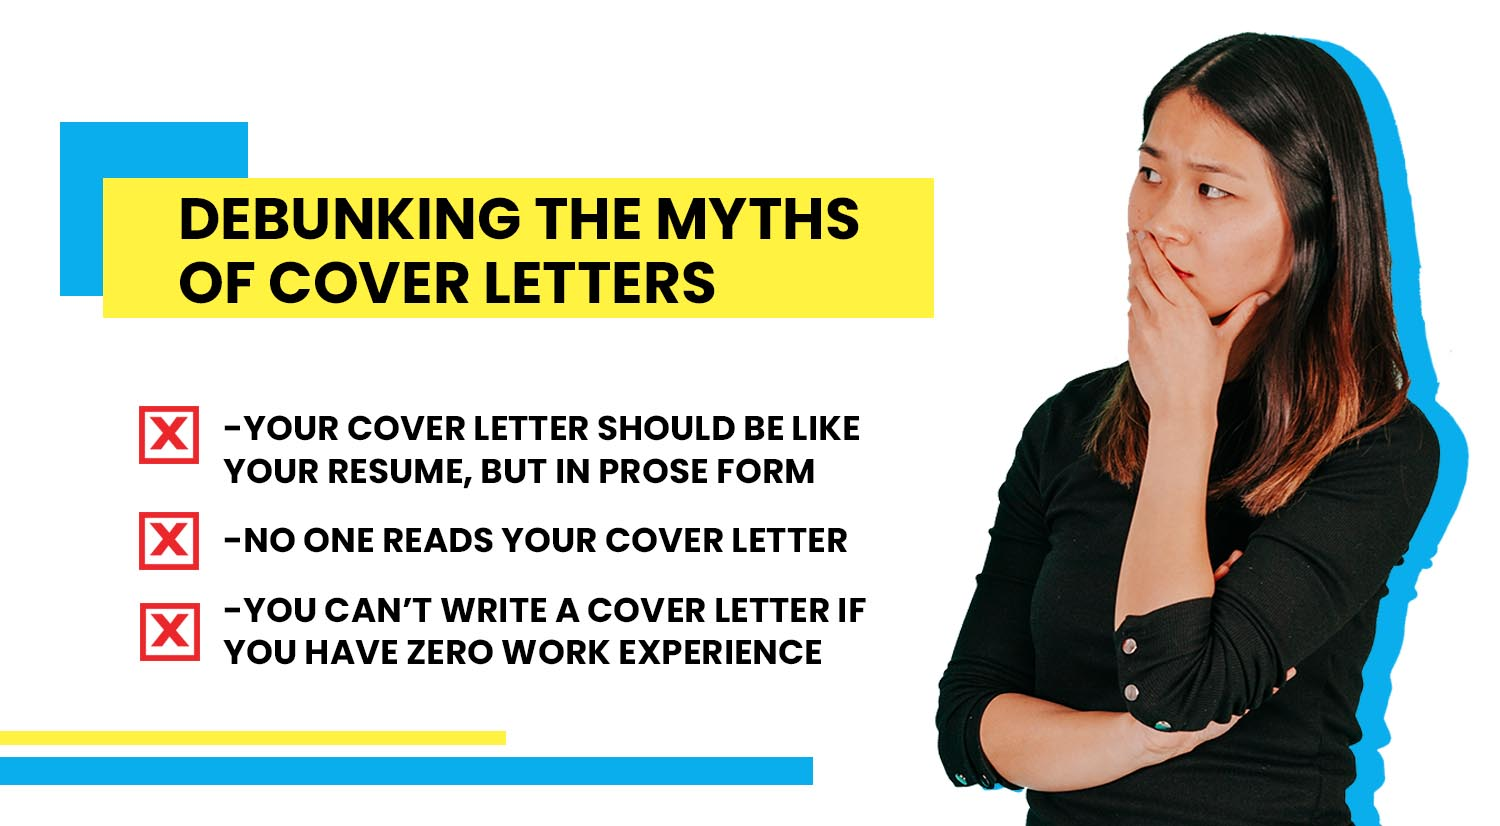 what is a cover letter myth